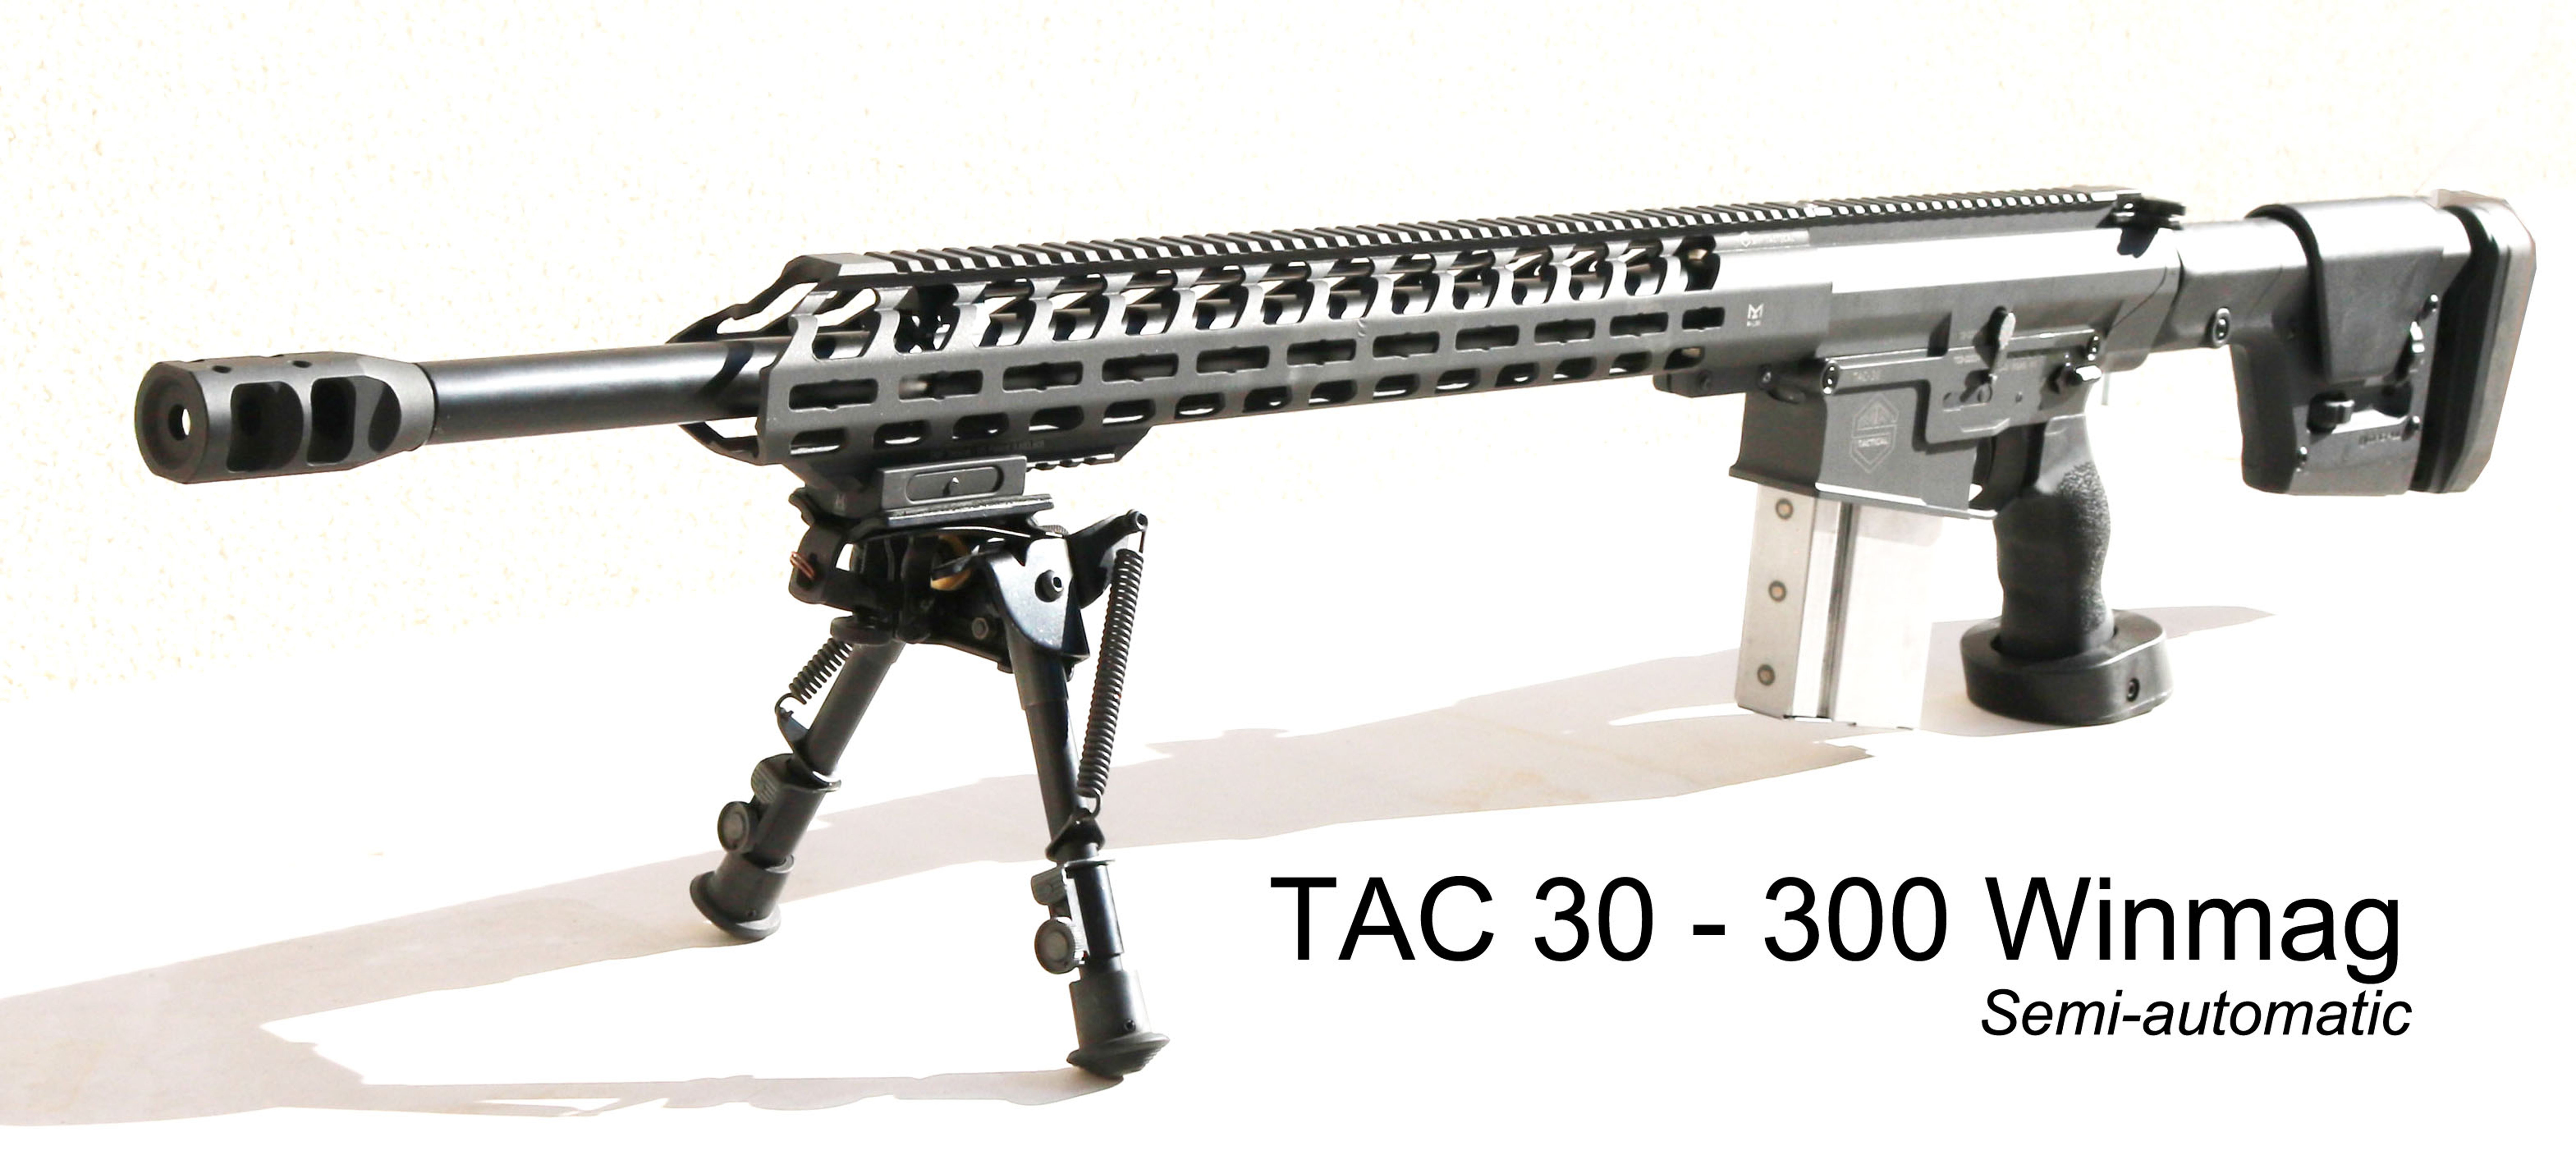 tac30-300winmag SMF Tactical